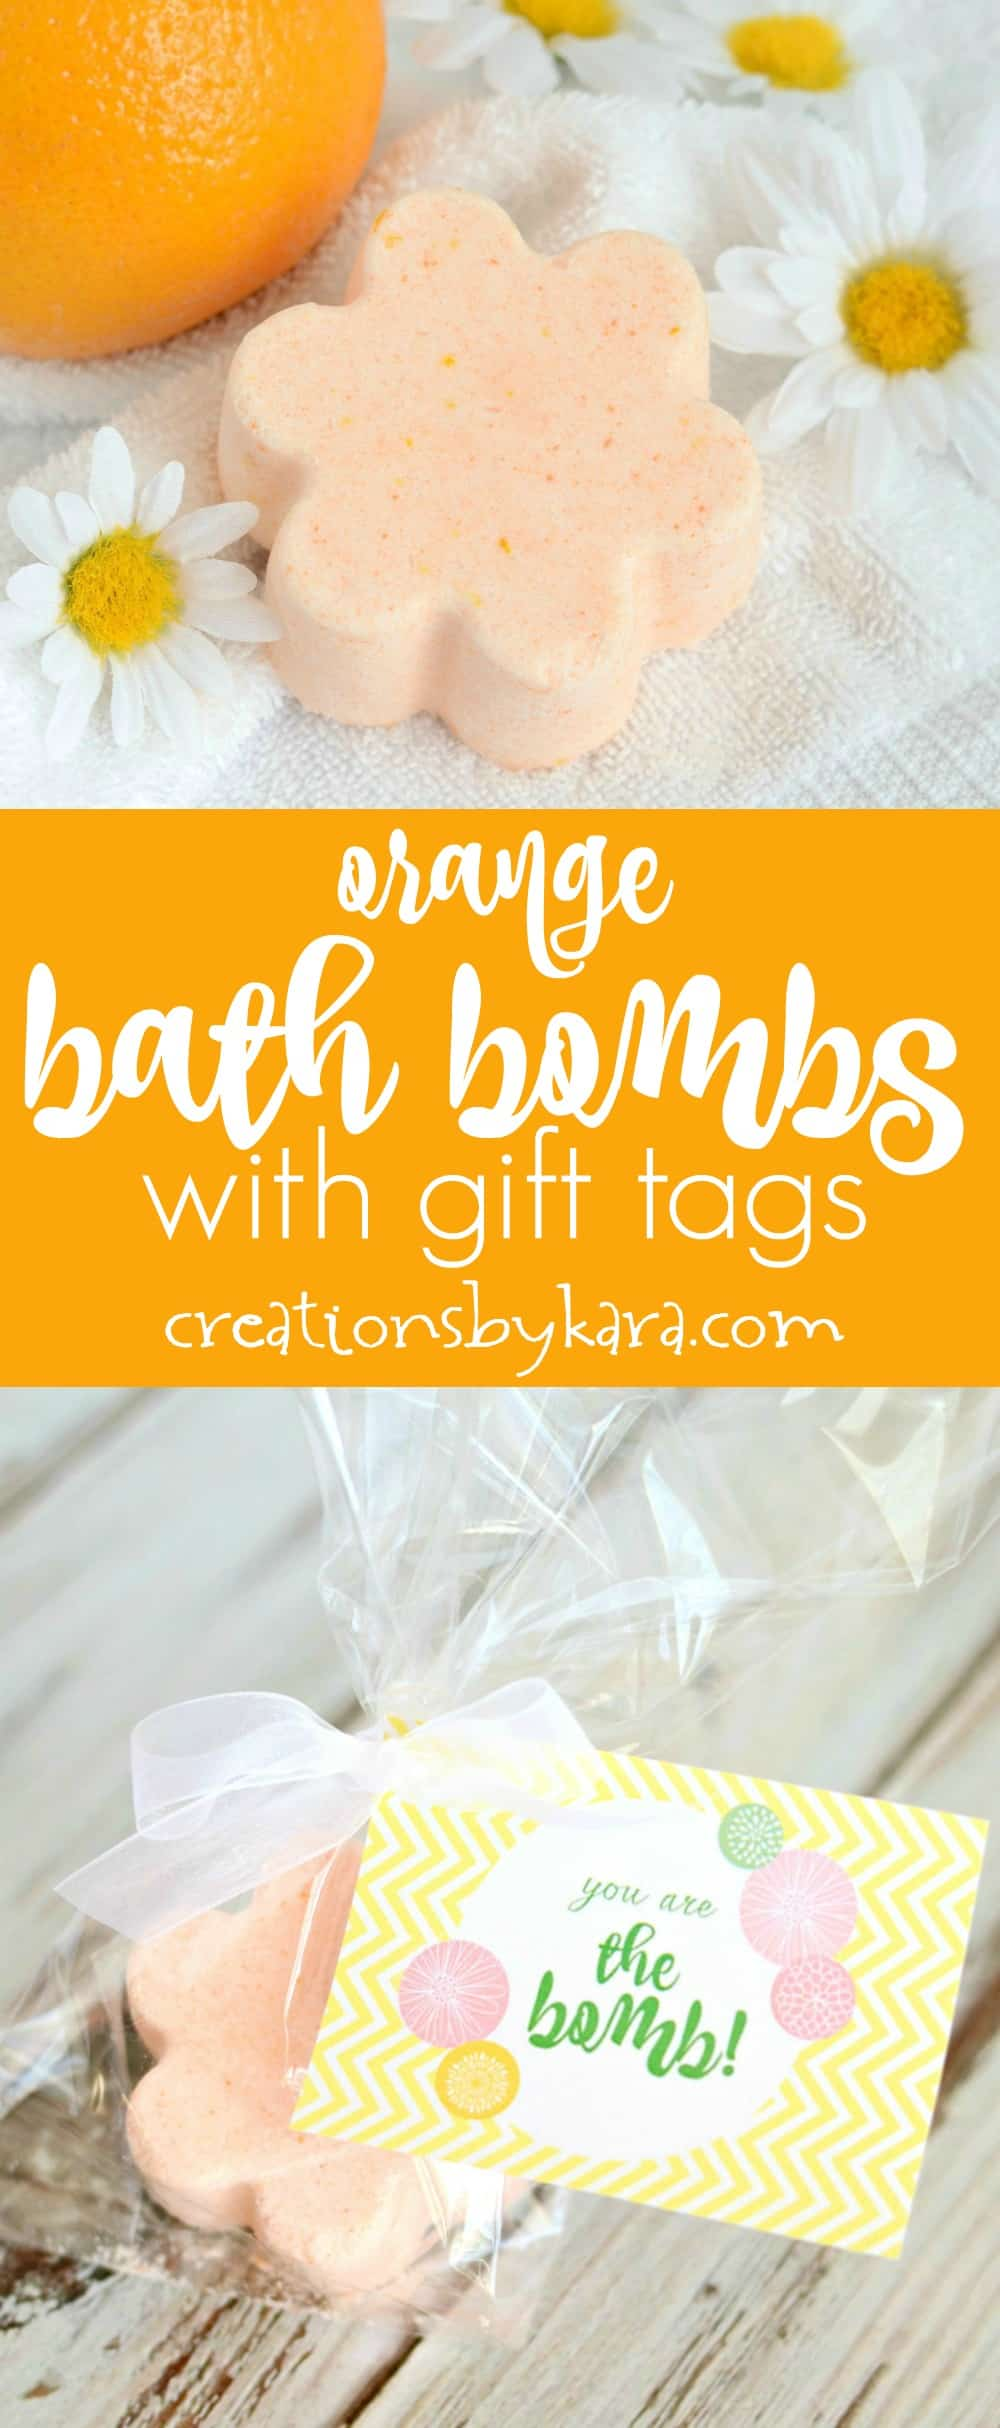 Make your own homemade orange bath bombs for a fraction of the cost. DIY bath bombs make perfect girlfriend gifts! An easy bath bomb recipe.